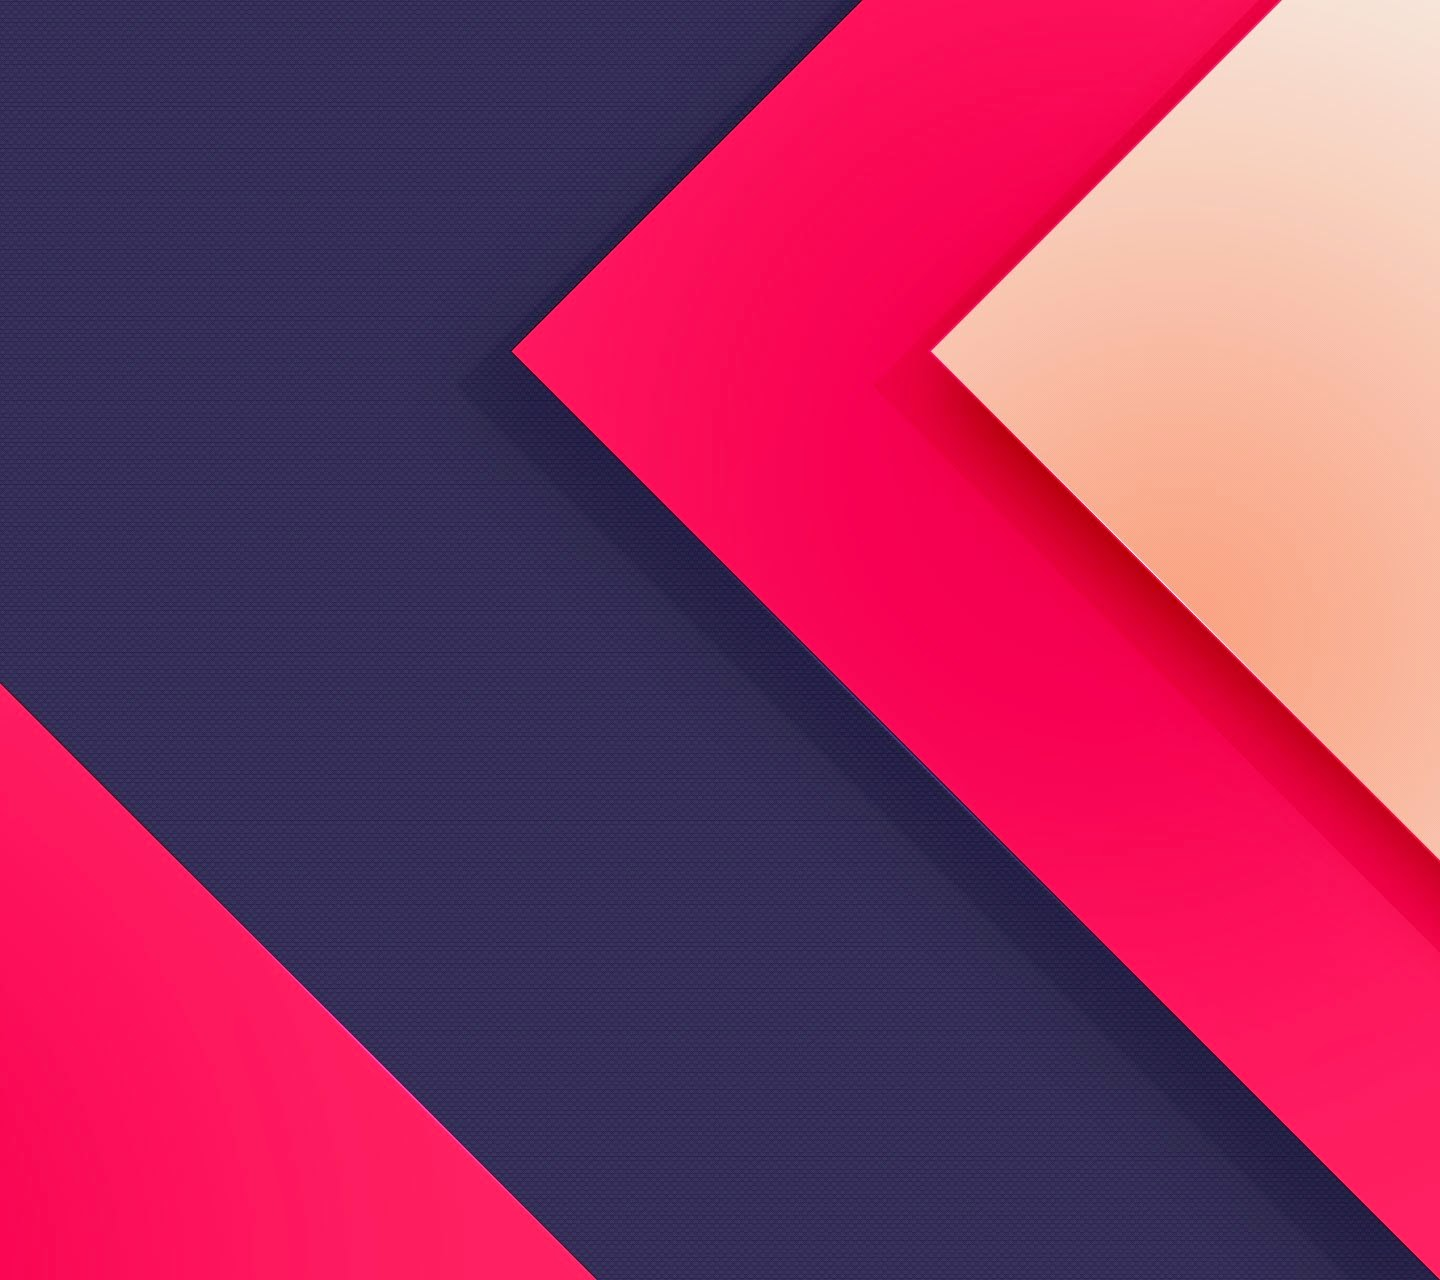 10 Awesome Wallpapers Inspired By Google's Material Design